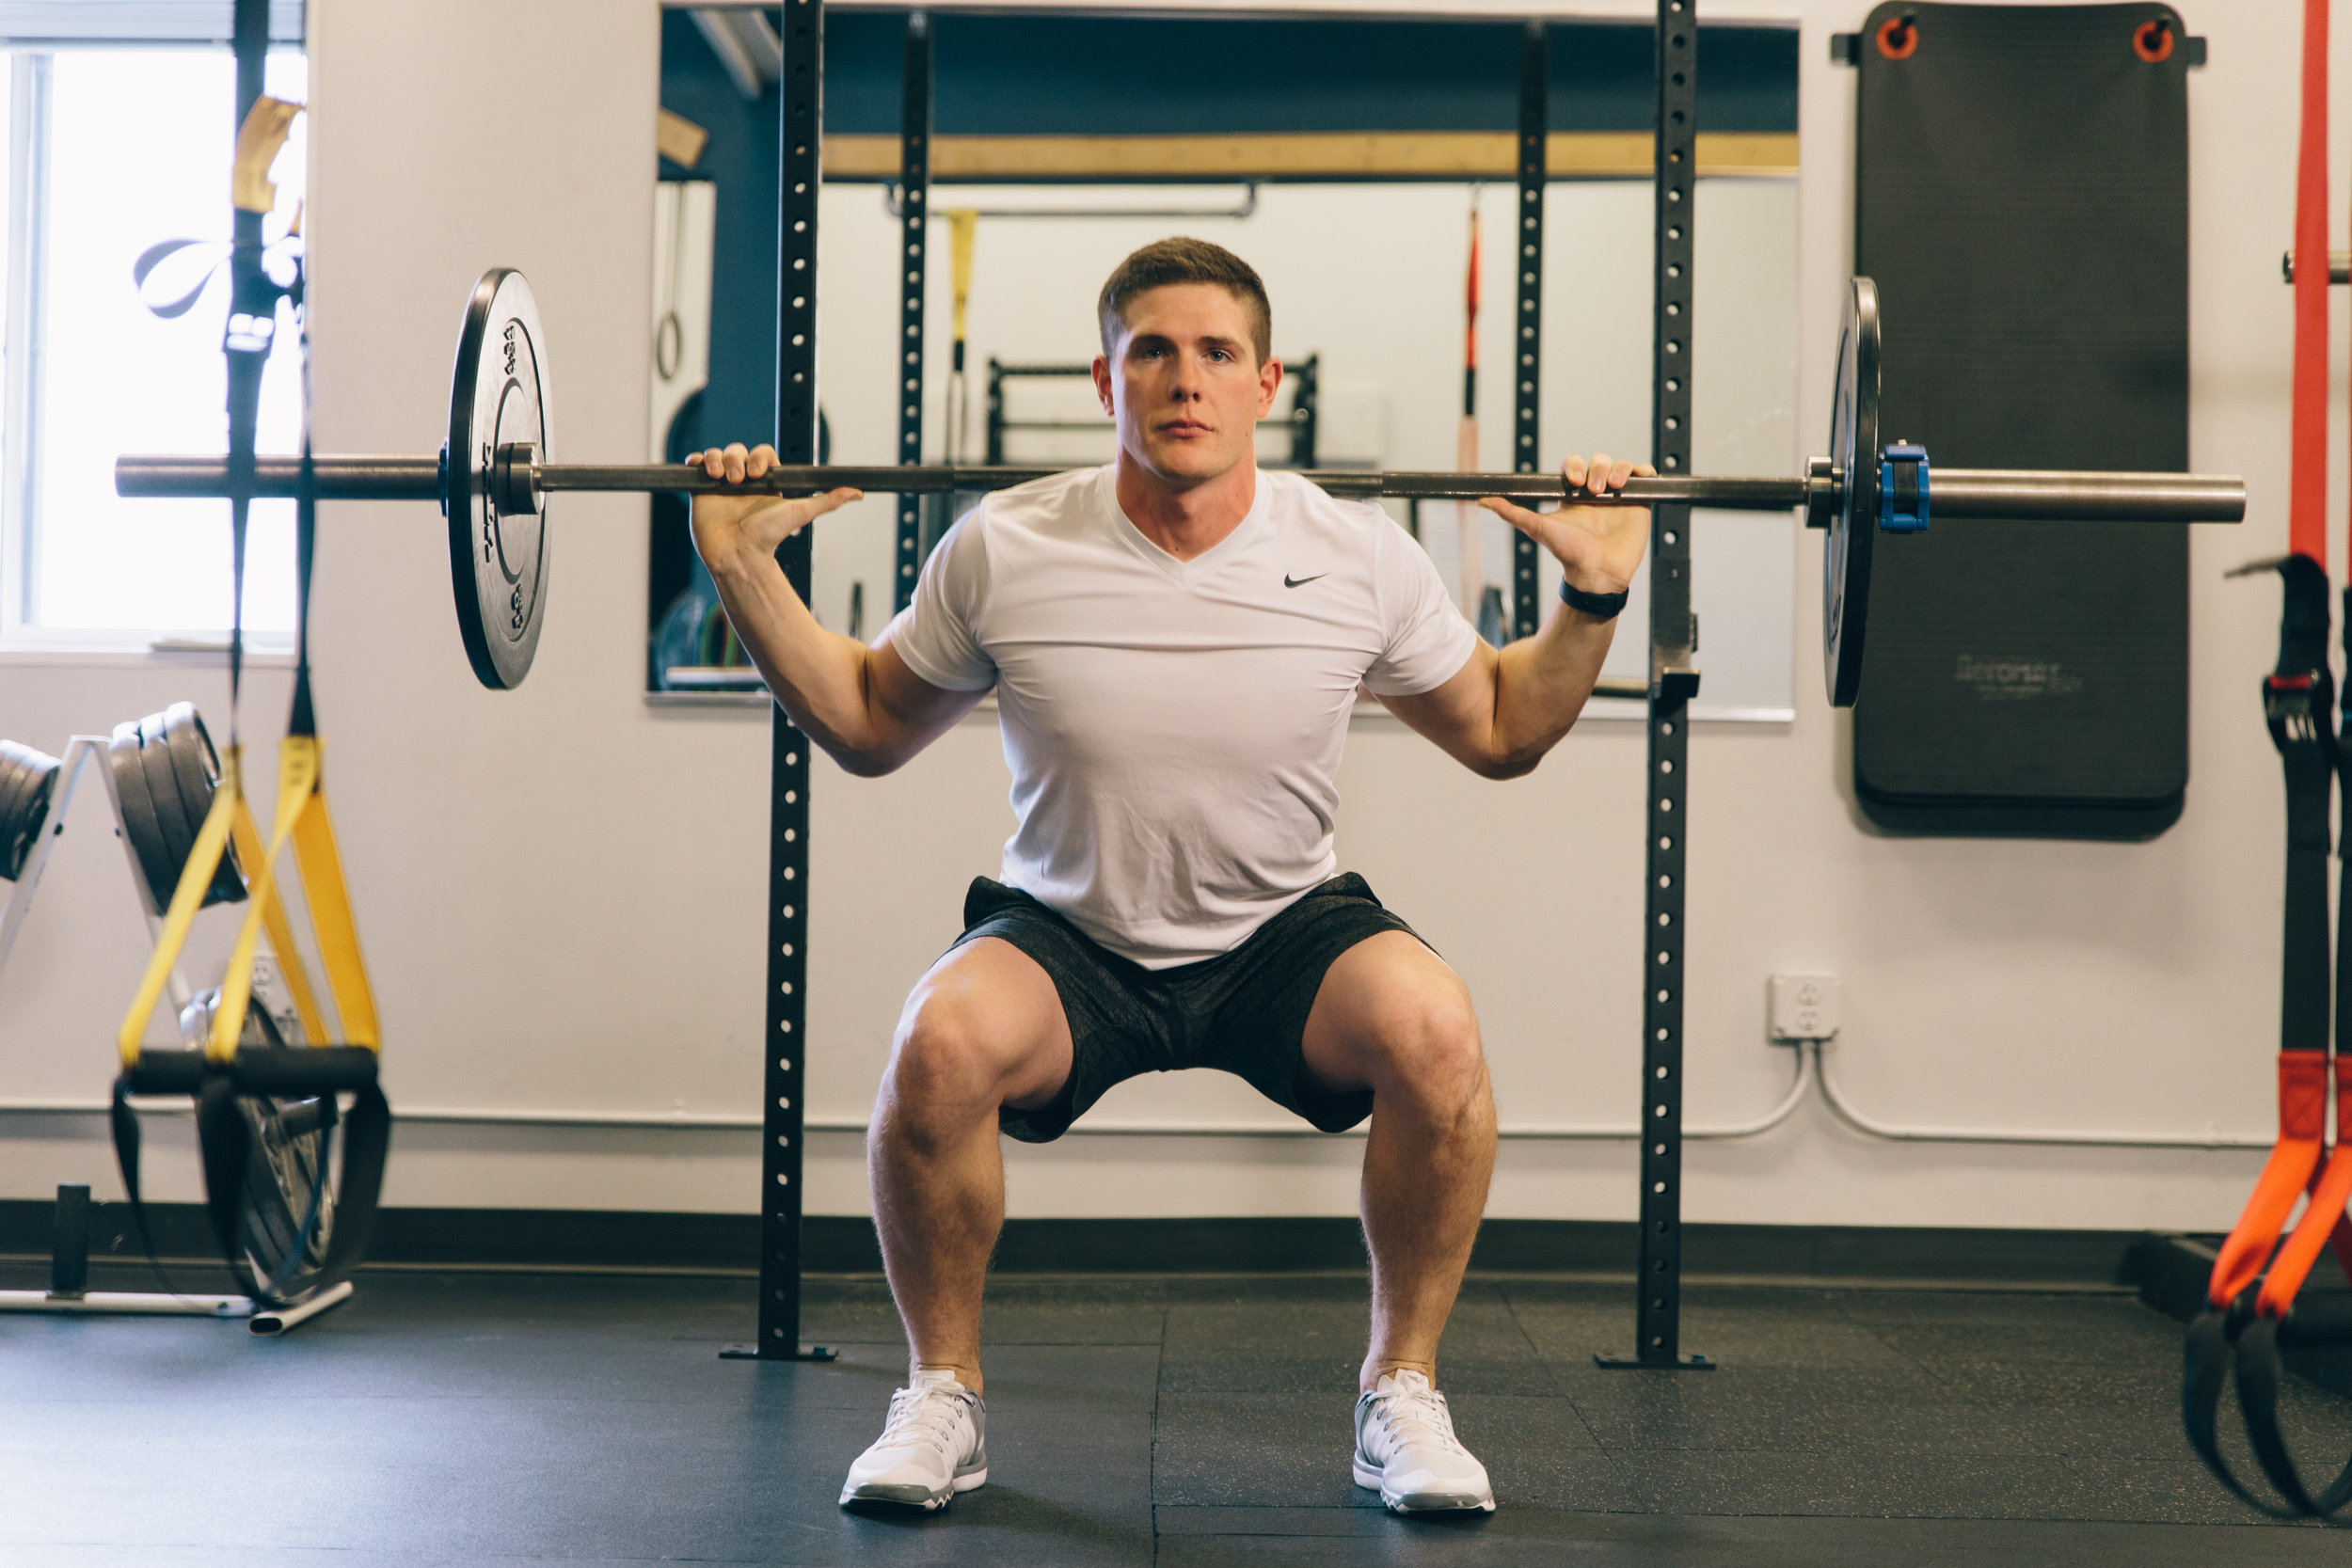 Pulse Podiatry Weight lifting barbell squat form